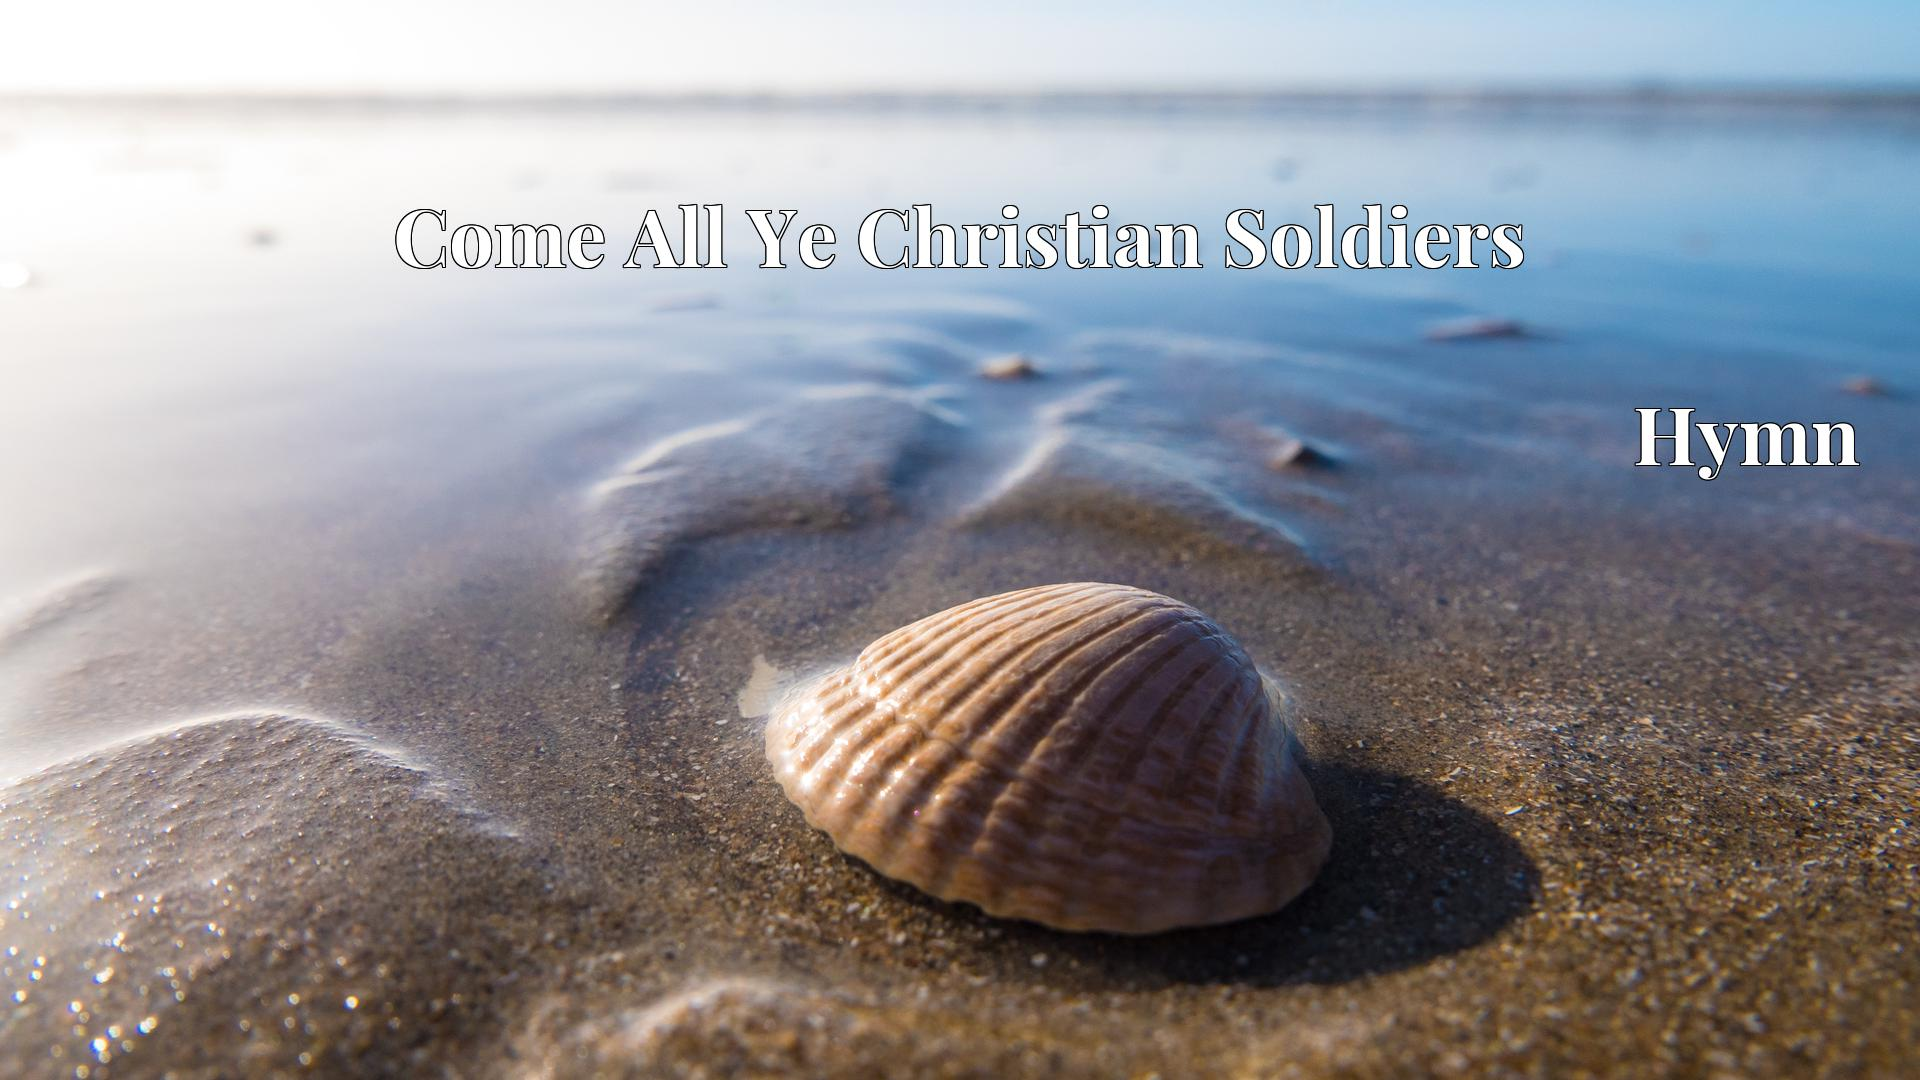 Come All Ye Christian Soldiers - Hymn